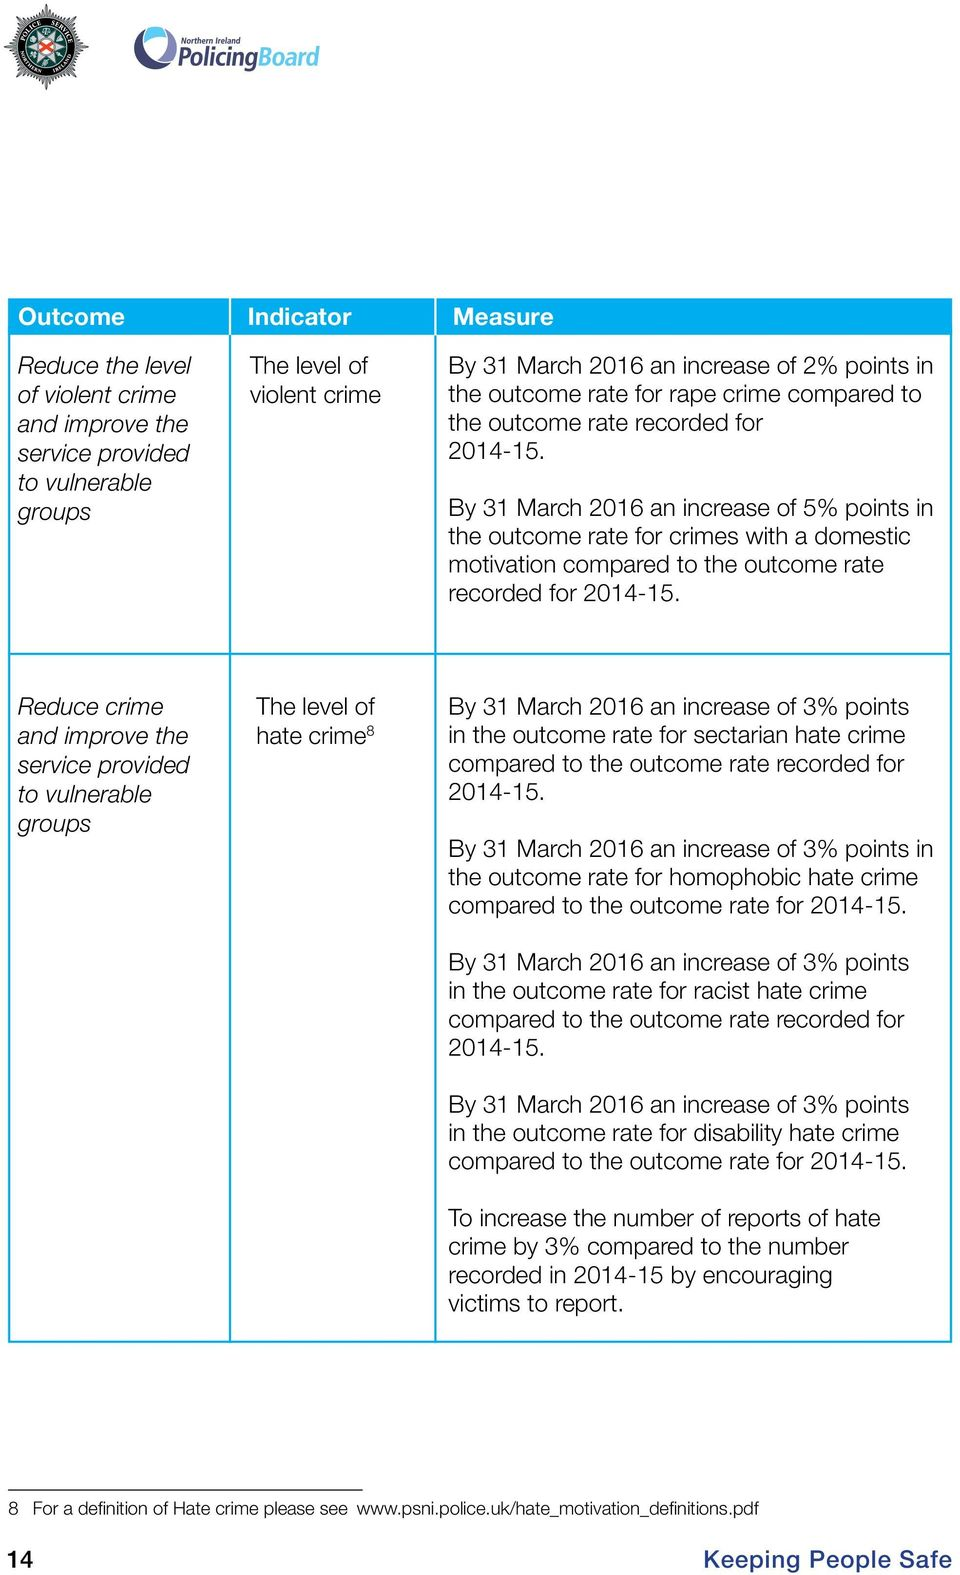 By 31 March 2016 an increase of 5% points in the outcome rate for crimes with a domestic motivation compared to the outcome rate recorded for 2014-15.